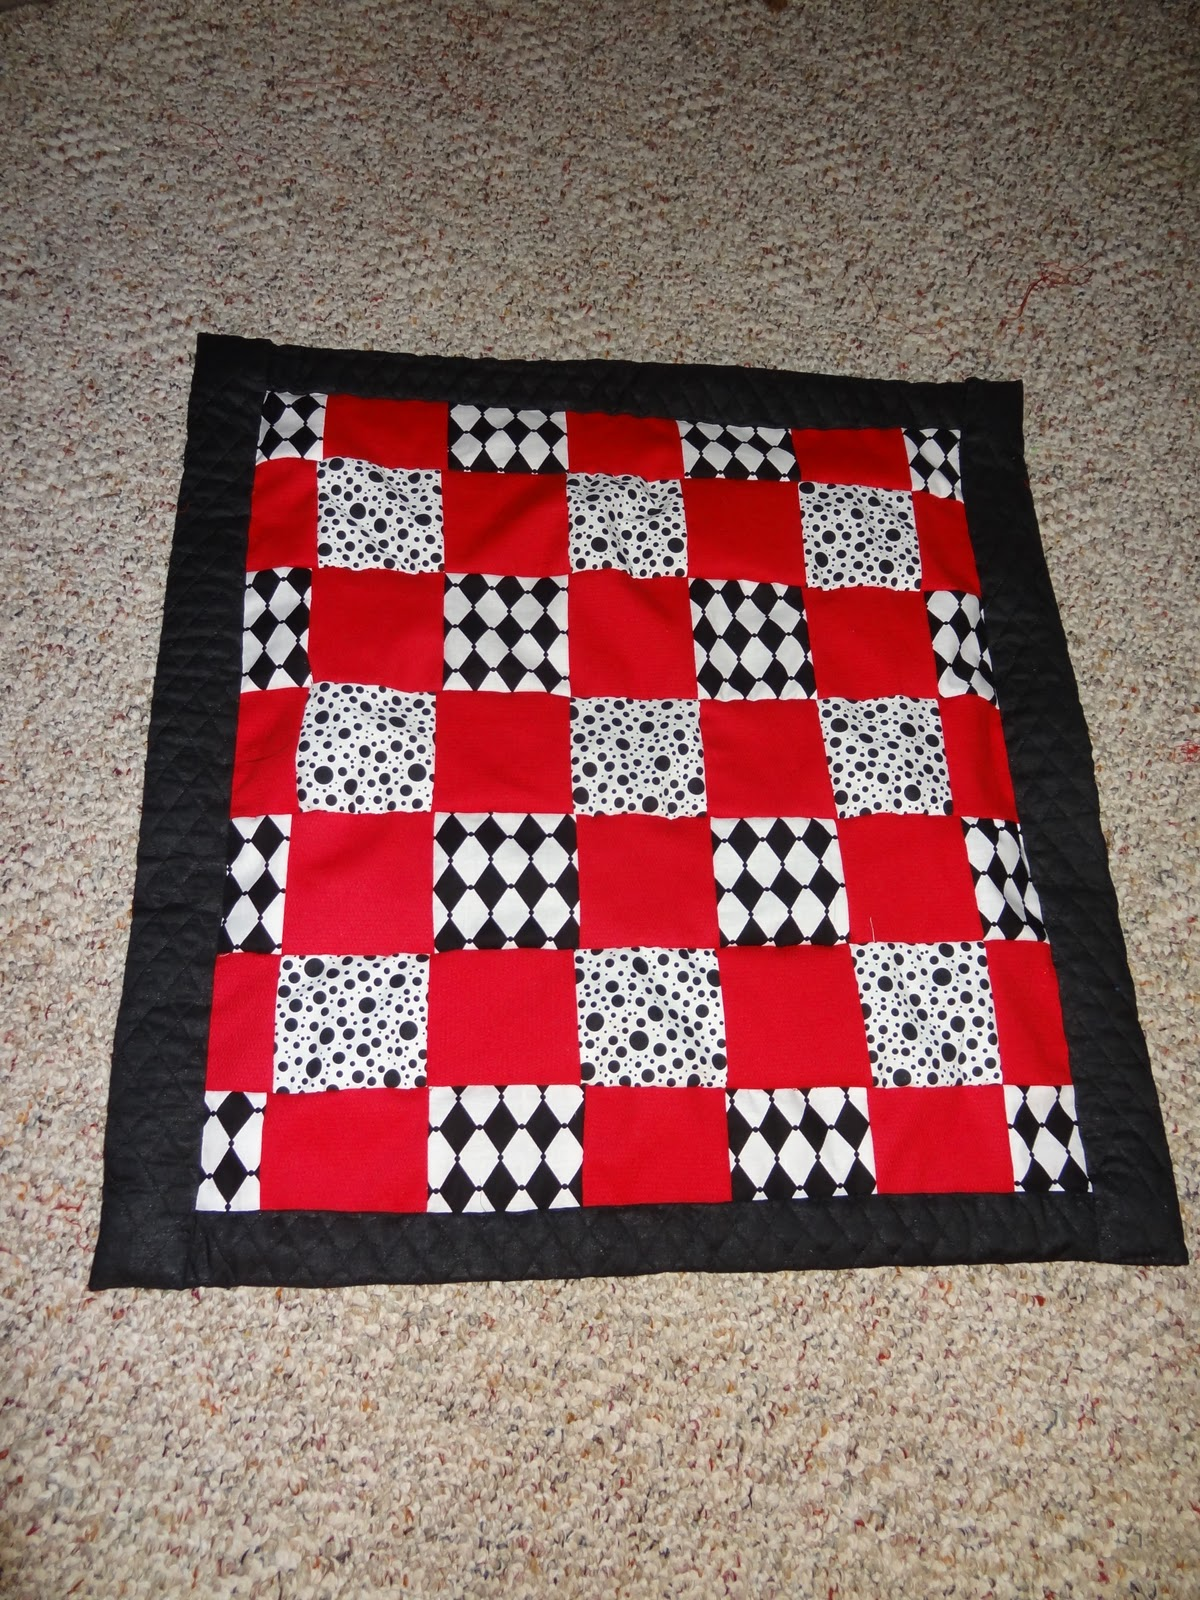 All in a day for Floor quilt for babies